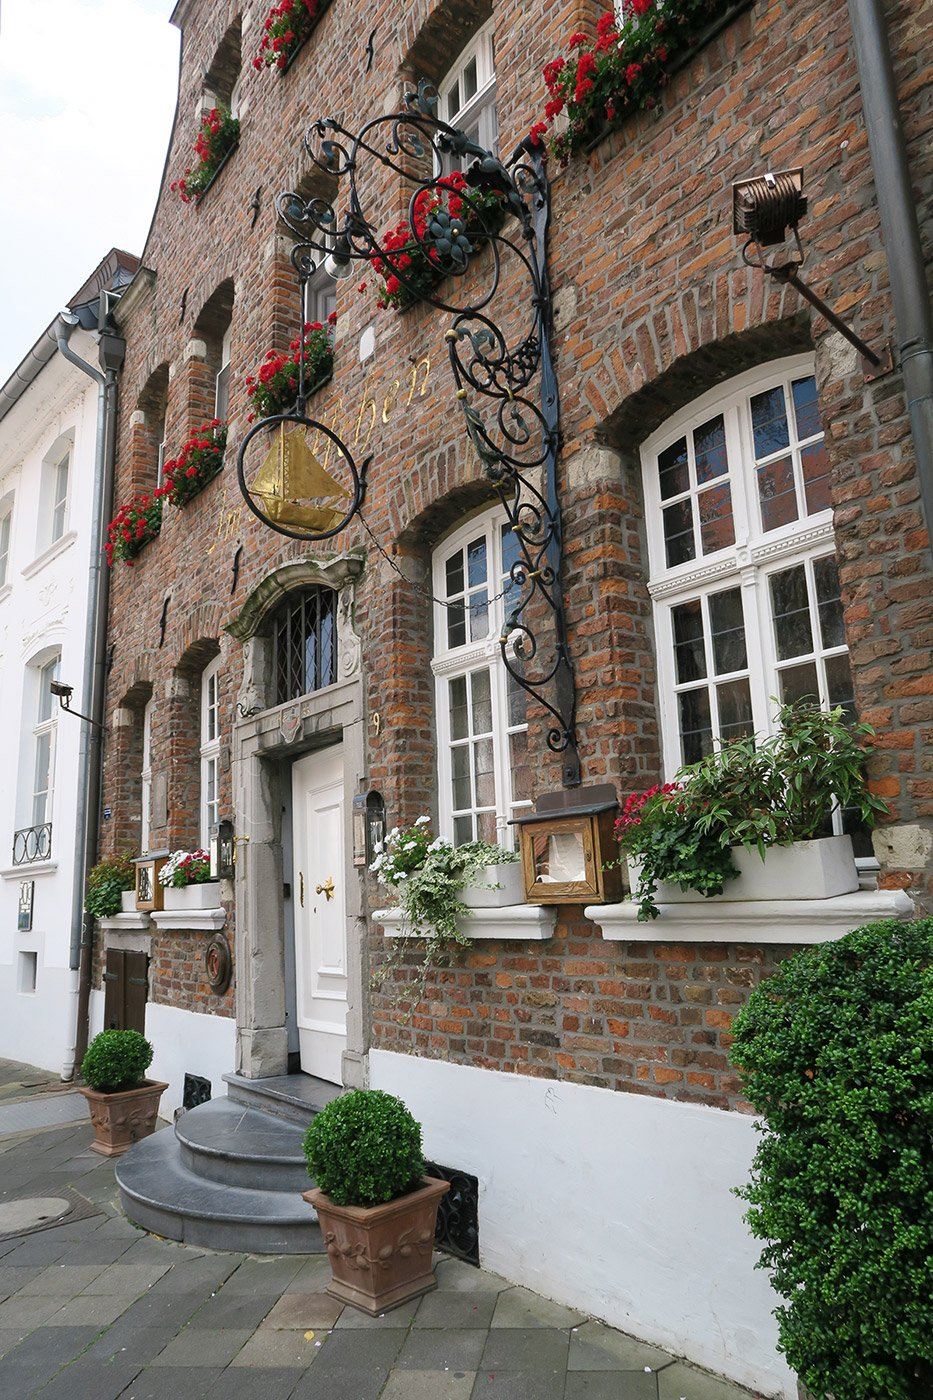 Building front decorated with flower pots: Michelin star restaurant Im Schiffchen